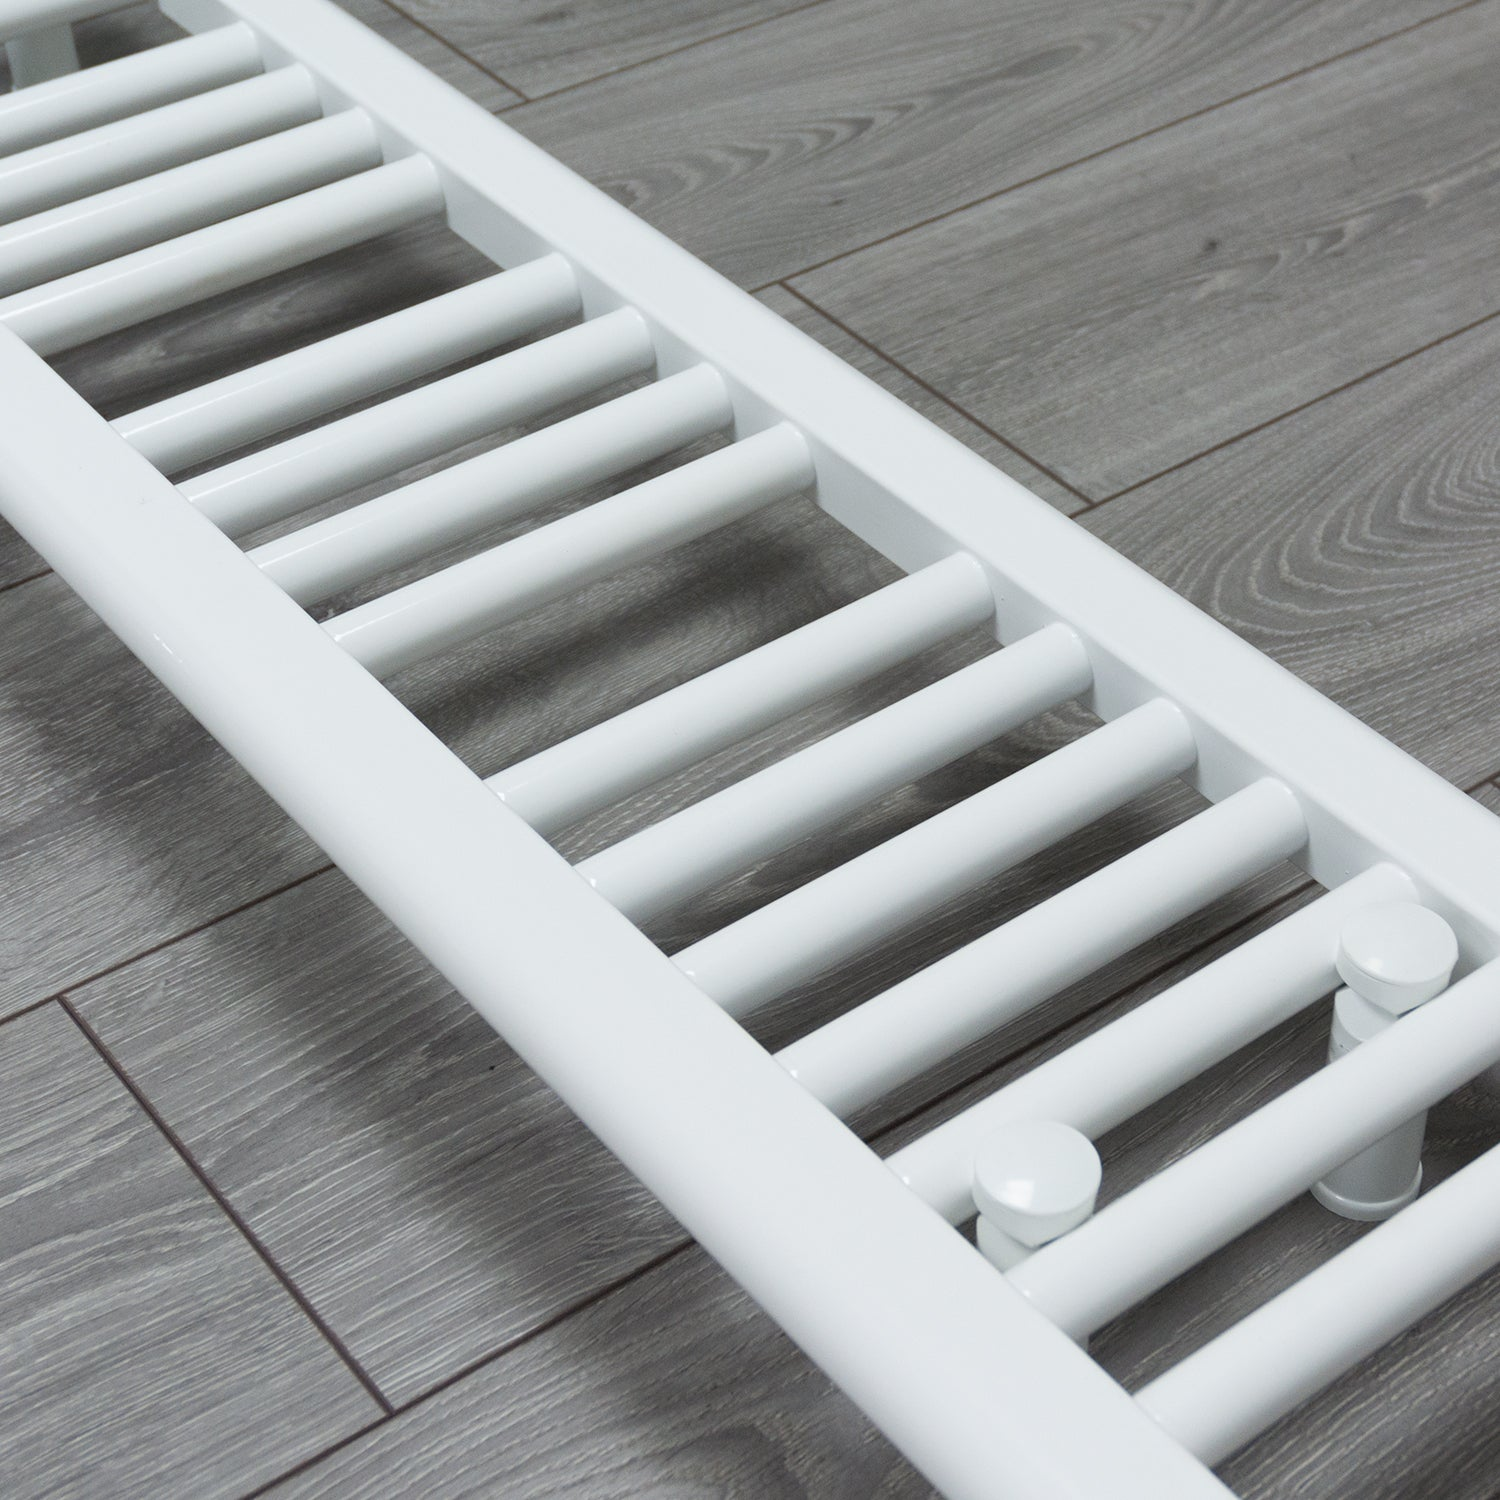 200mm Wide 1400mm High Flat White Heated Towel Rail Radiator HTR